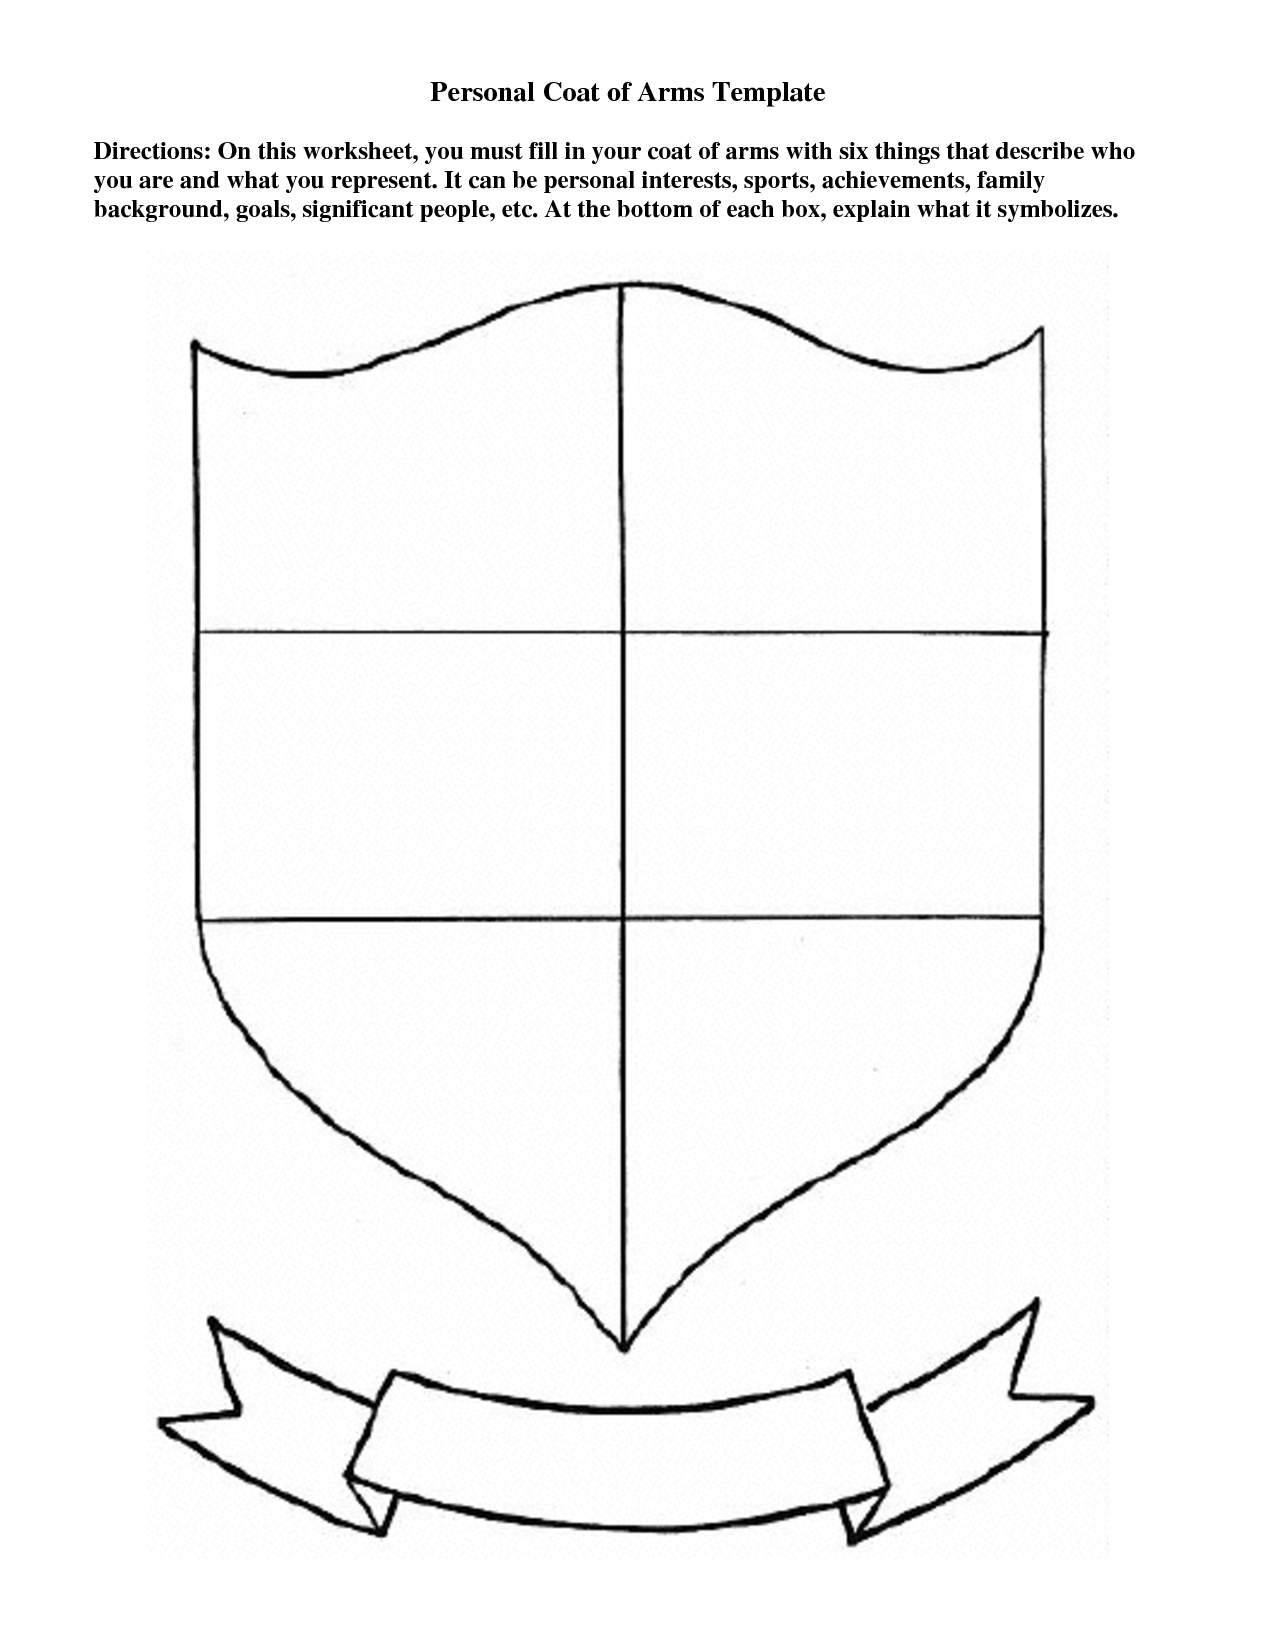 Worksheets Coat Of Arms Worksheet personal coat of arms template education pinterest bulletin board template